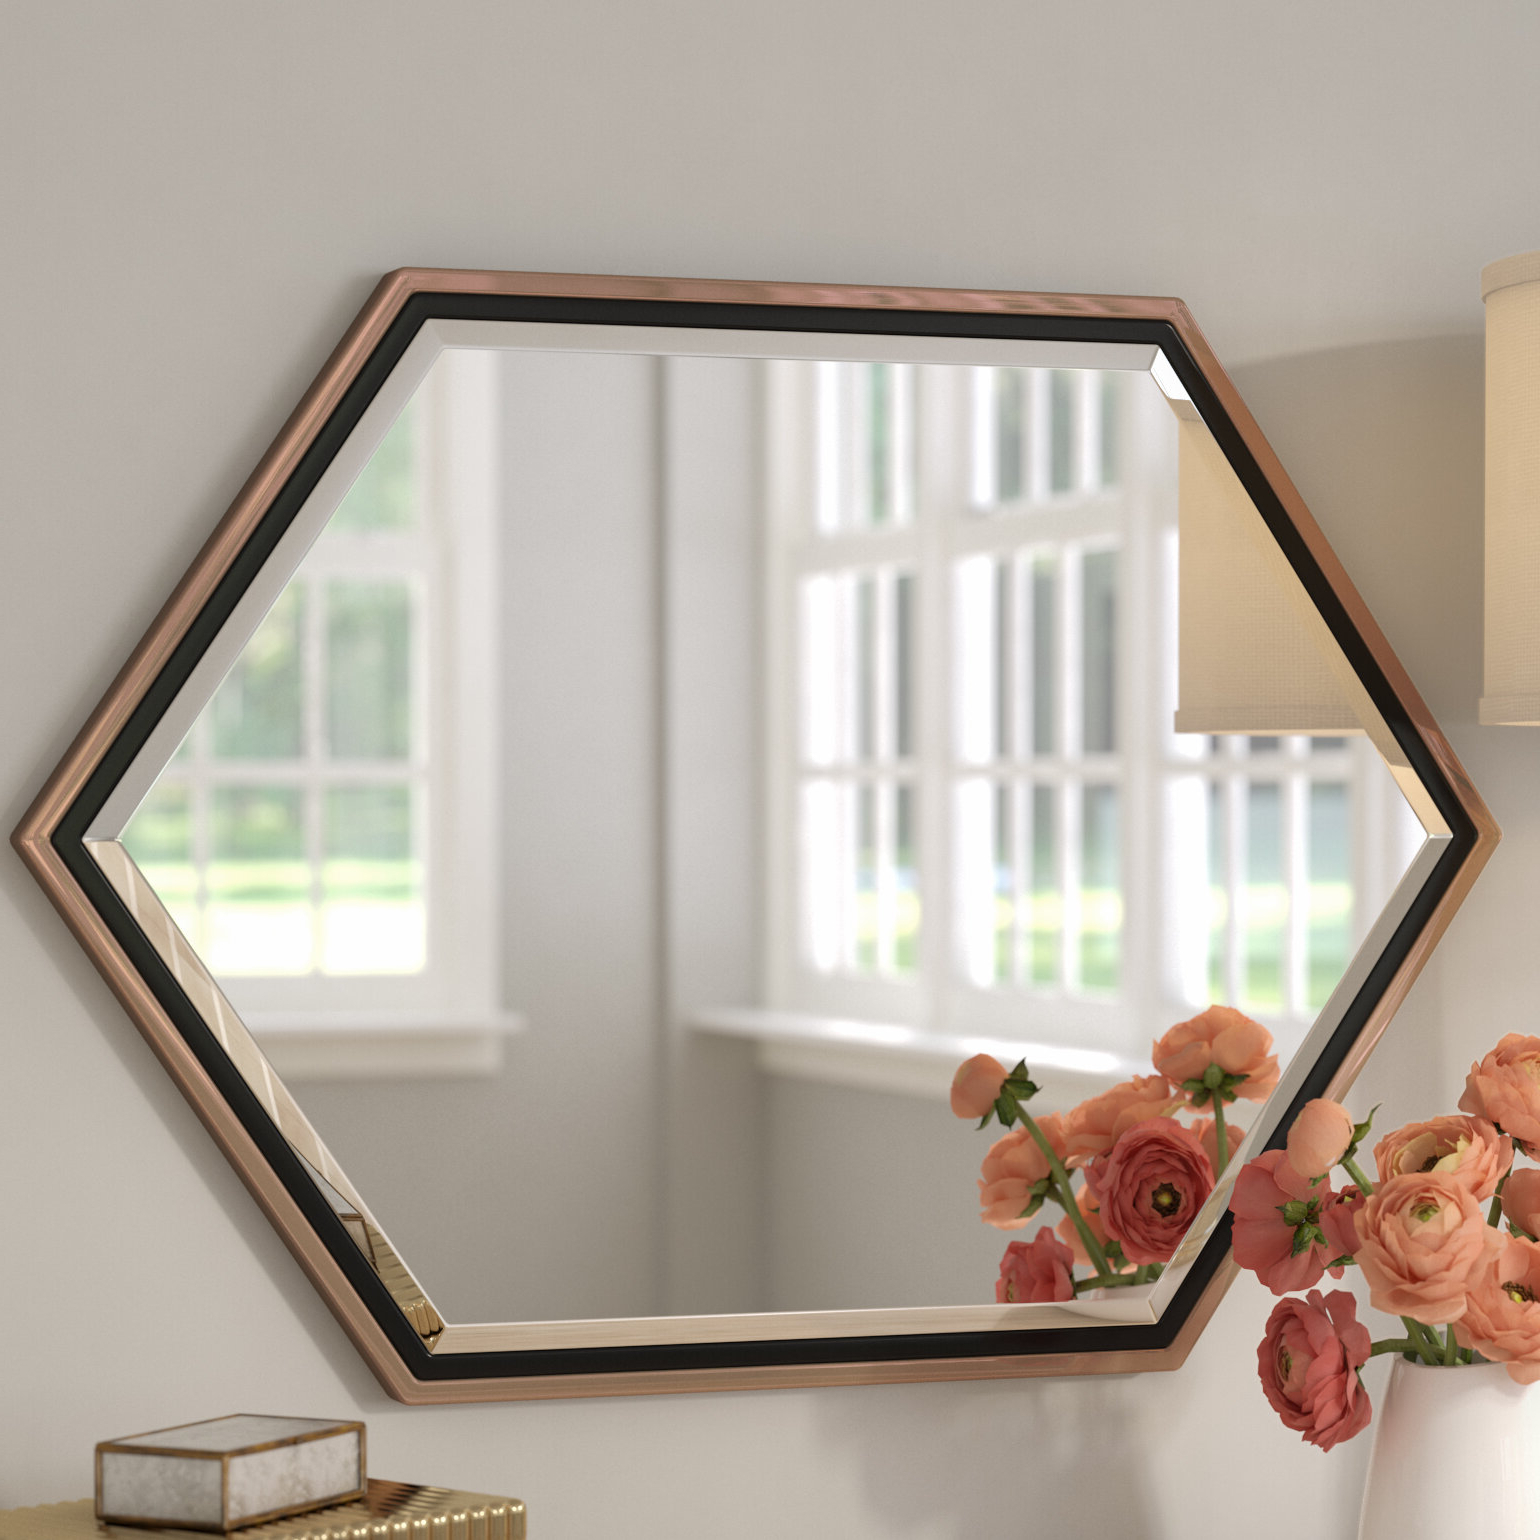 Metal Frame Wall Mirrors Pertaining To Recent Contemporary Metal Frame Accent Wall Mirror (View 4 of 20)